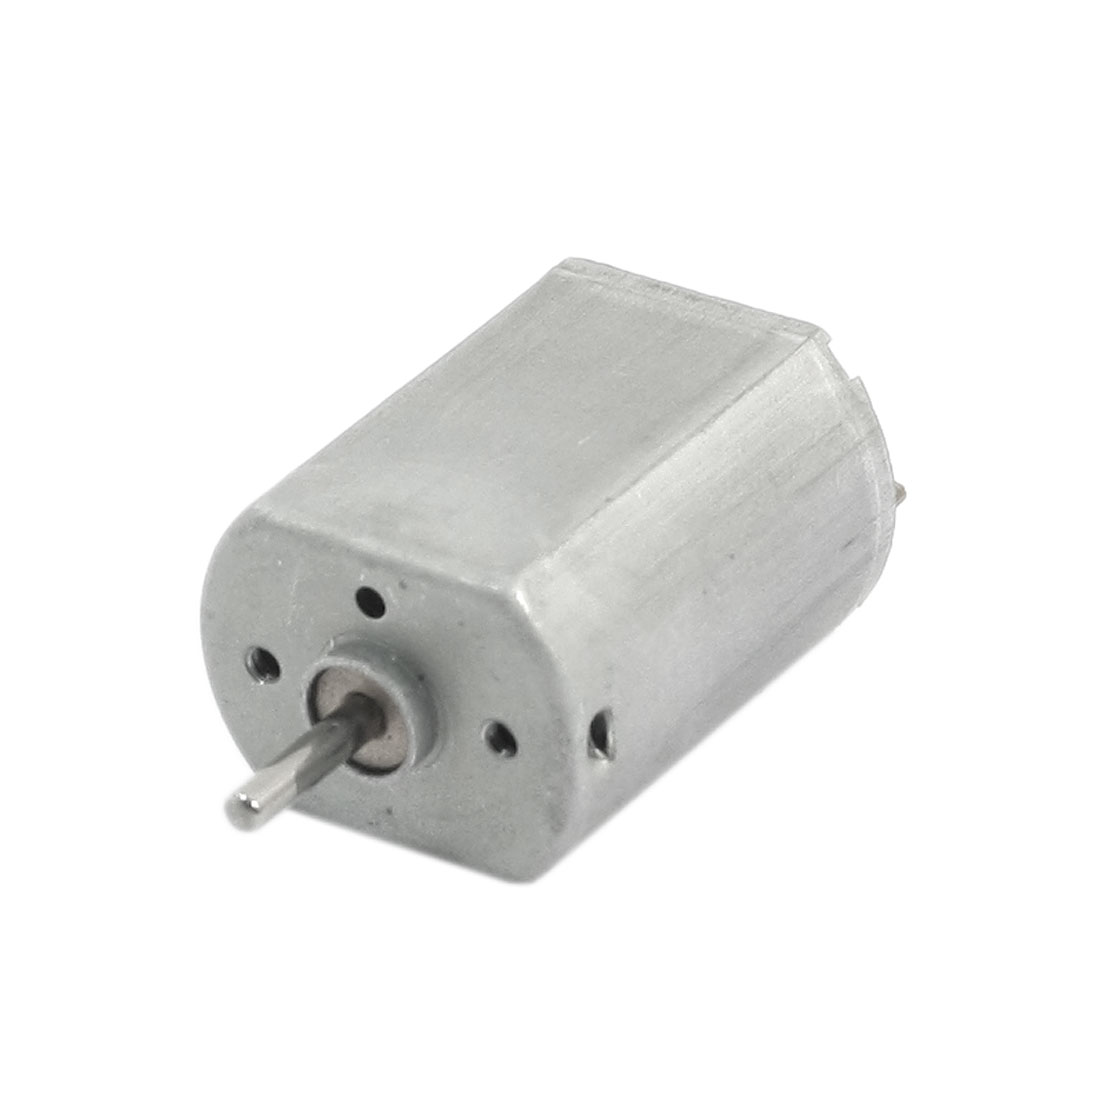 DC1.5-9V 7000RPM 2mm x 9mm Shaft Micro Motor for Model Boat